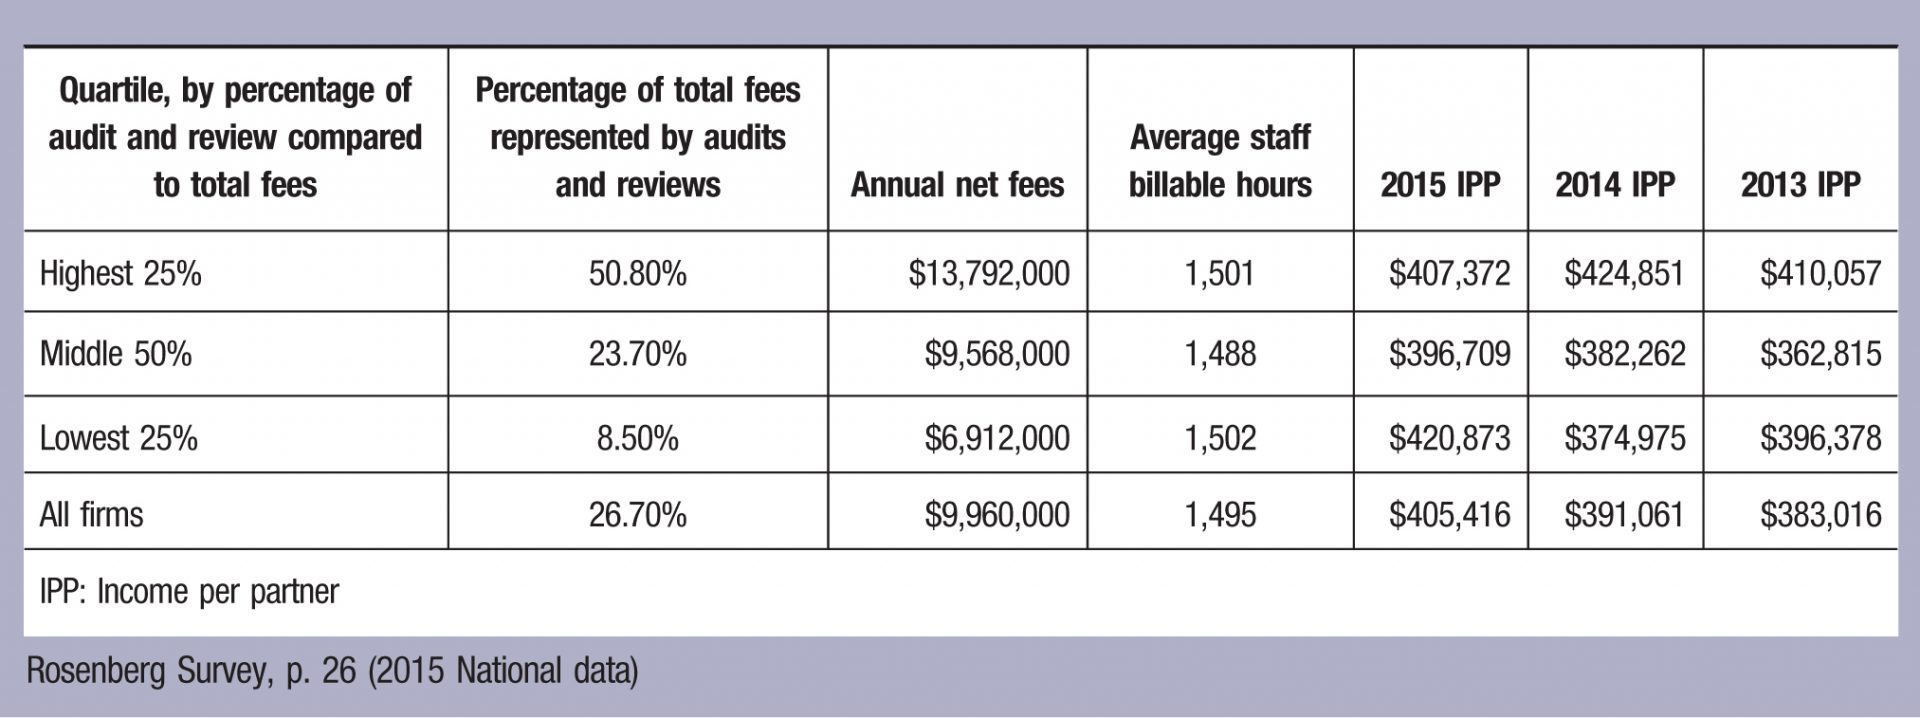 Quartile, by percentage of audit and review compared to total fees; Percentage of total fees represented by audits and reviews; Annual net fees; Average staff billable hours; 2015 IPP; 2014 IPP; 2013 IPP Highest 25%; 50.80%; ,792,000; 1,501; 7,372; 4,851; 0,057 Middle; 50%; 23.70%; ,568,000; 1,488; 6,709; 2,262; 2,815 Lowest; 25%; 8.50%; ,912,000; 1,502; 0,873; 4,975l 6,378 All firms; 26.70%; ,960,000; 1,495; 5,416; 1,061; 3,016 IPP: Income per partner Rosenberg Survey, p. 26 (2015 National data)